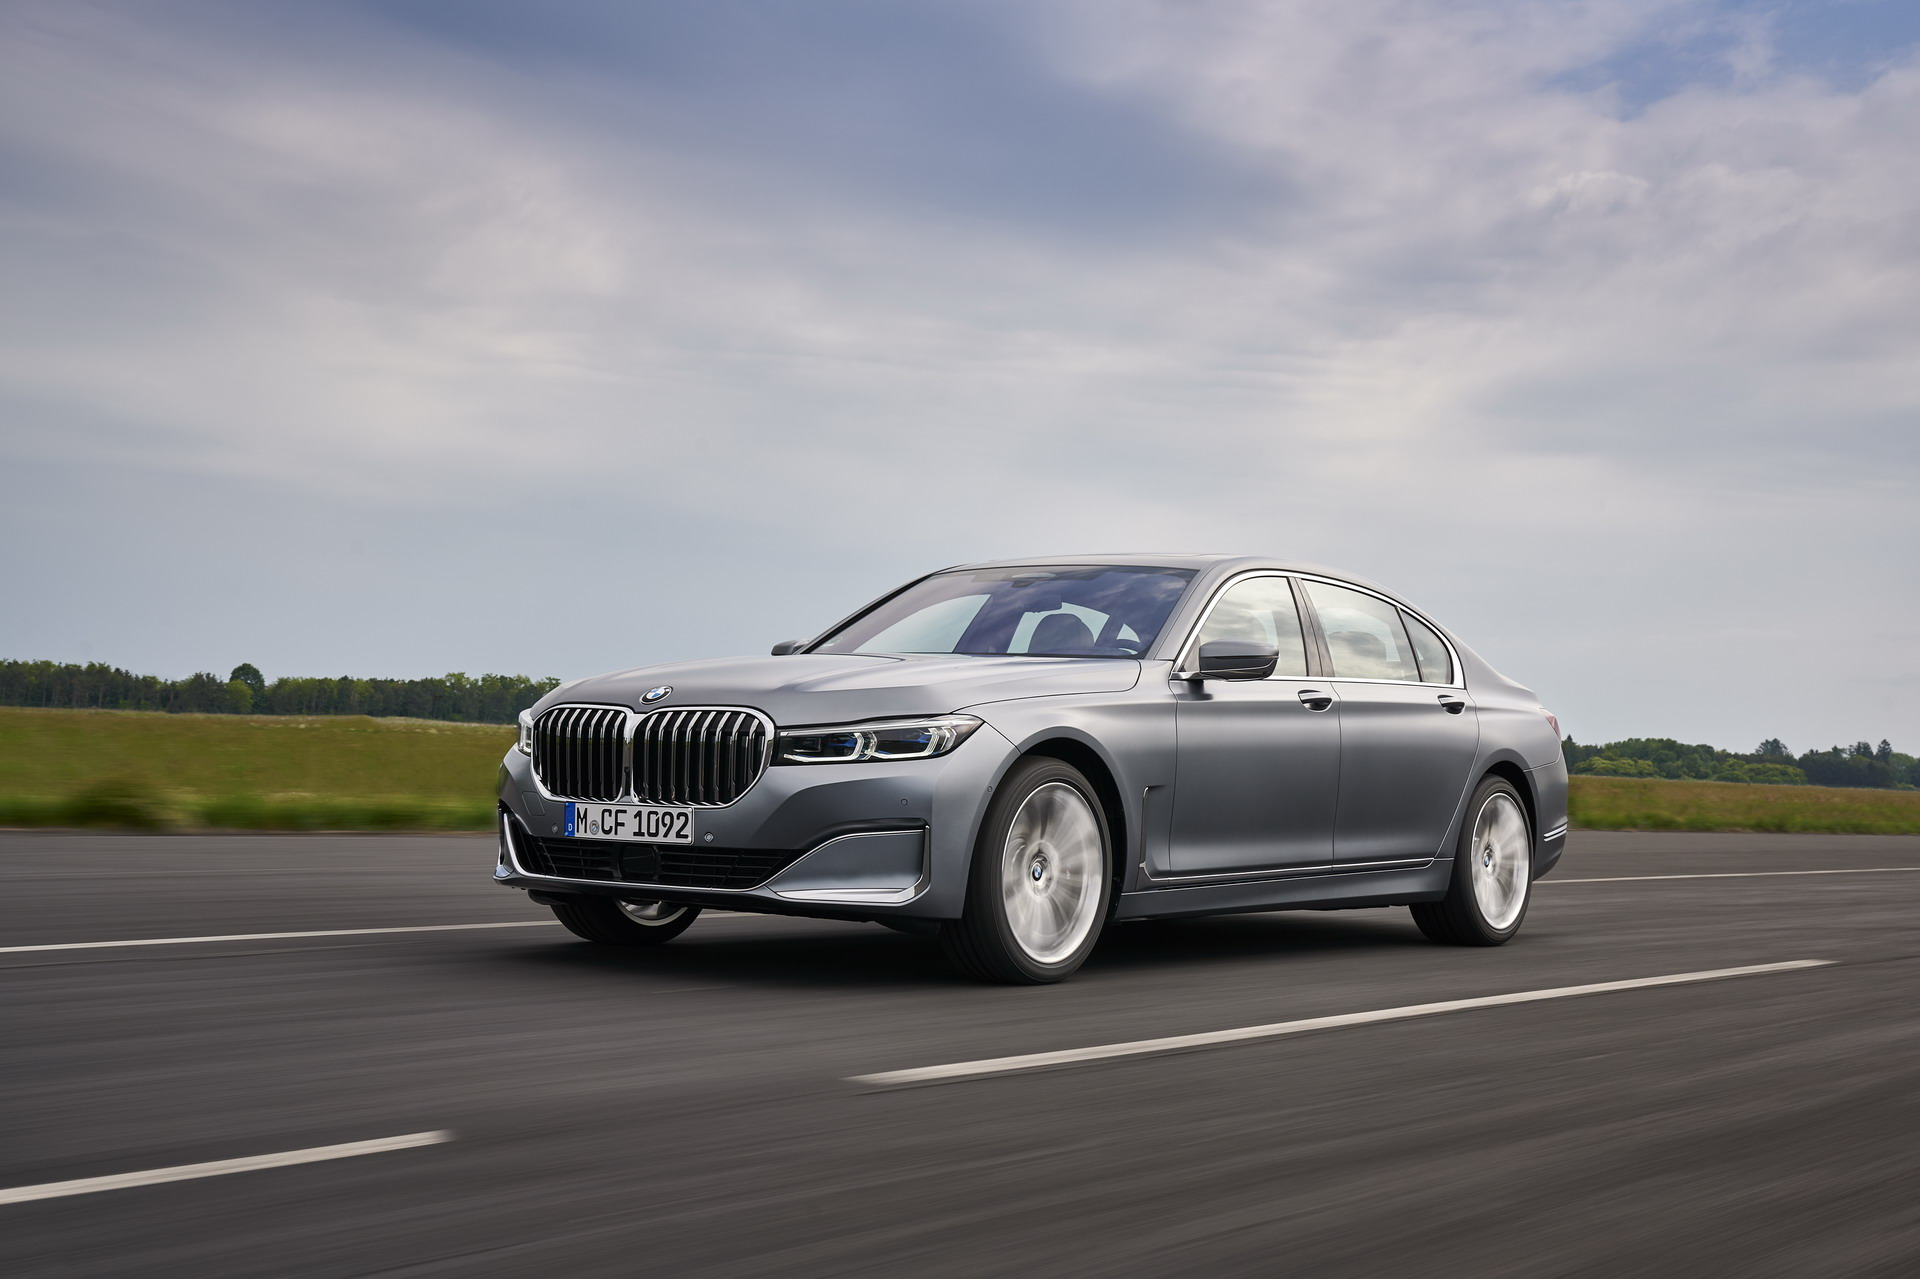 The New BMW 740Ld xDrive G12 LCI 2